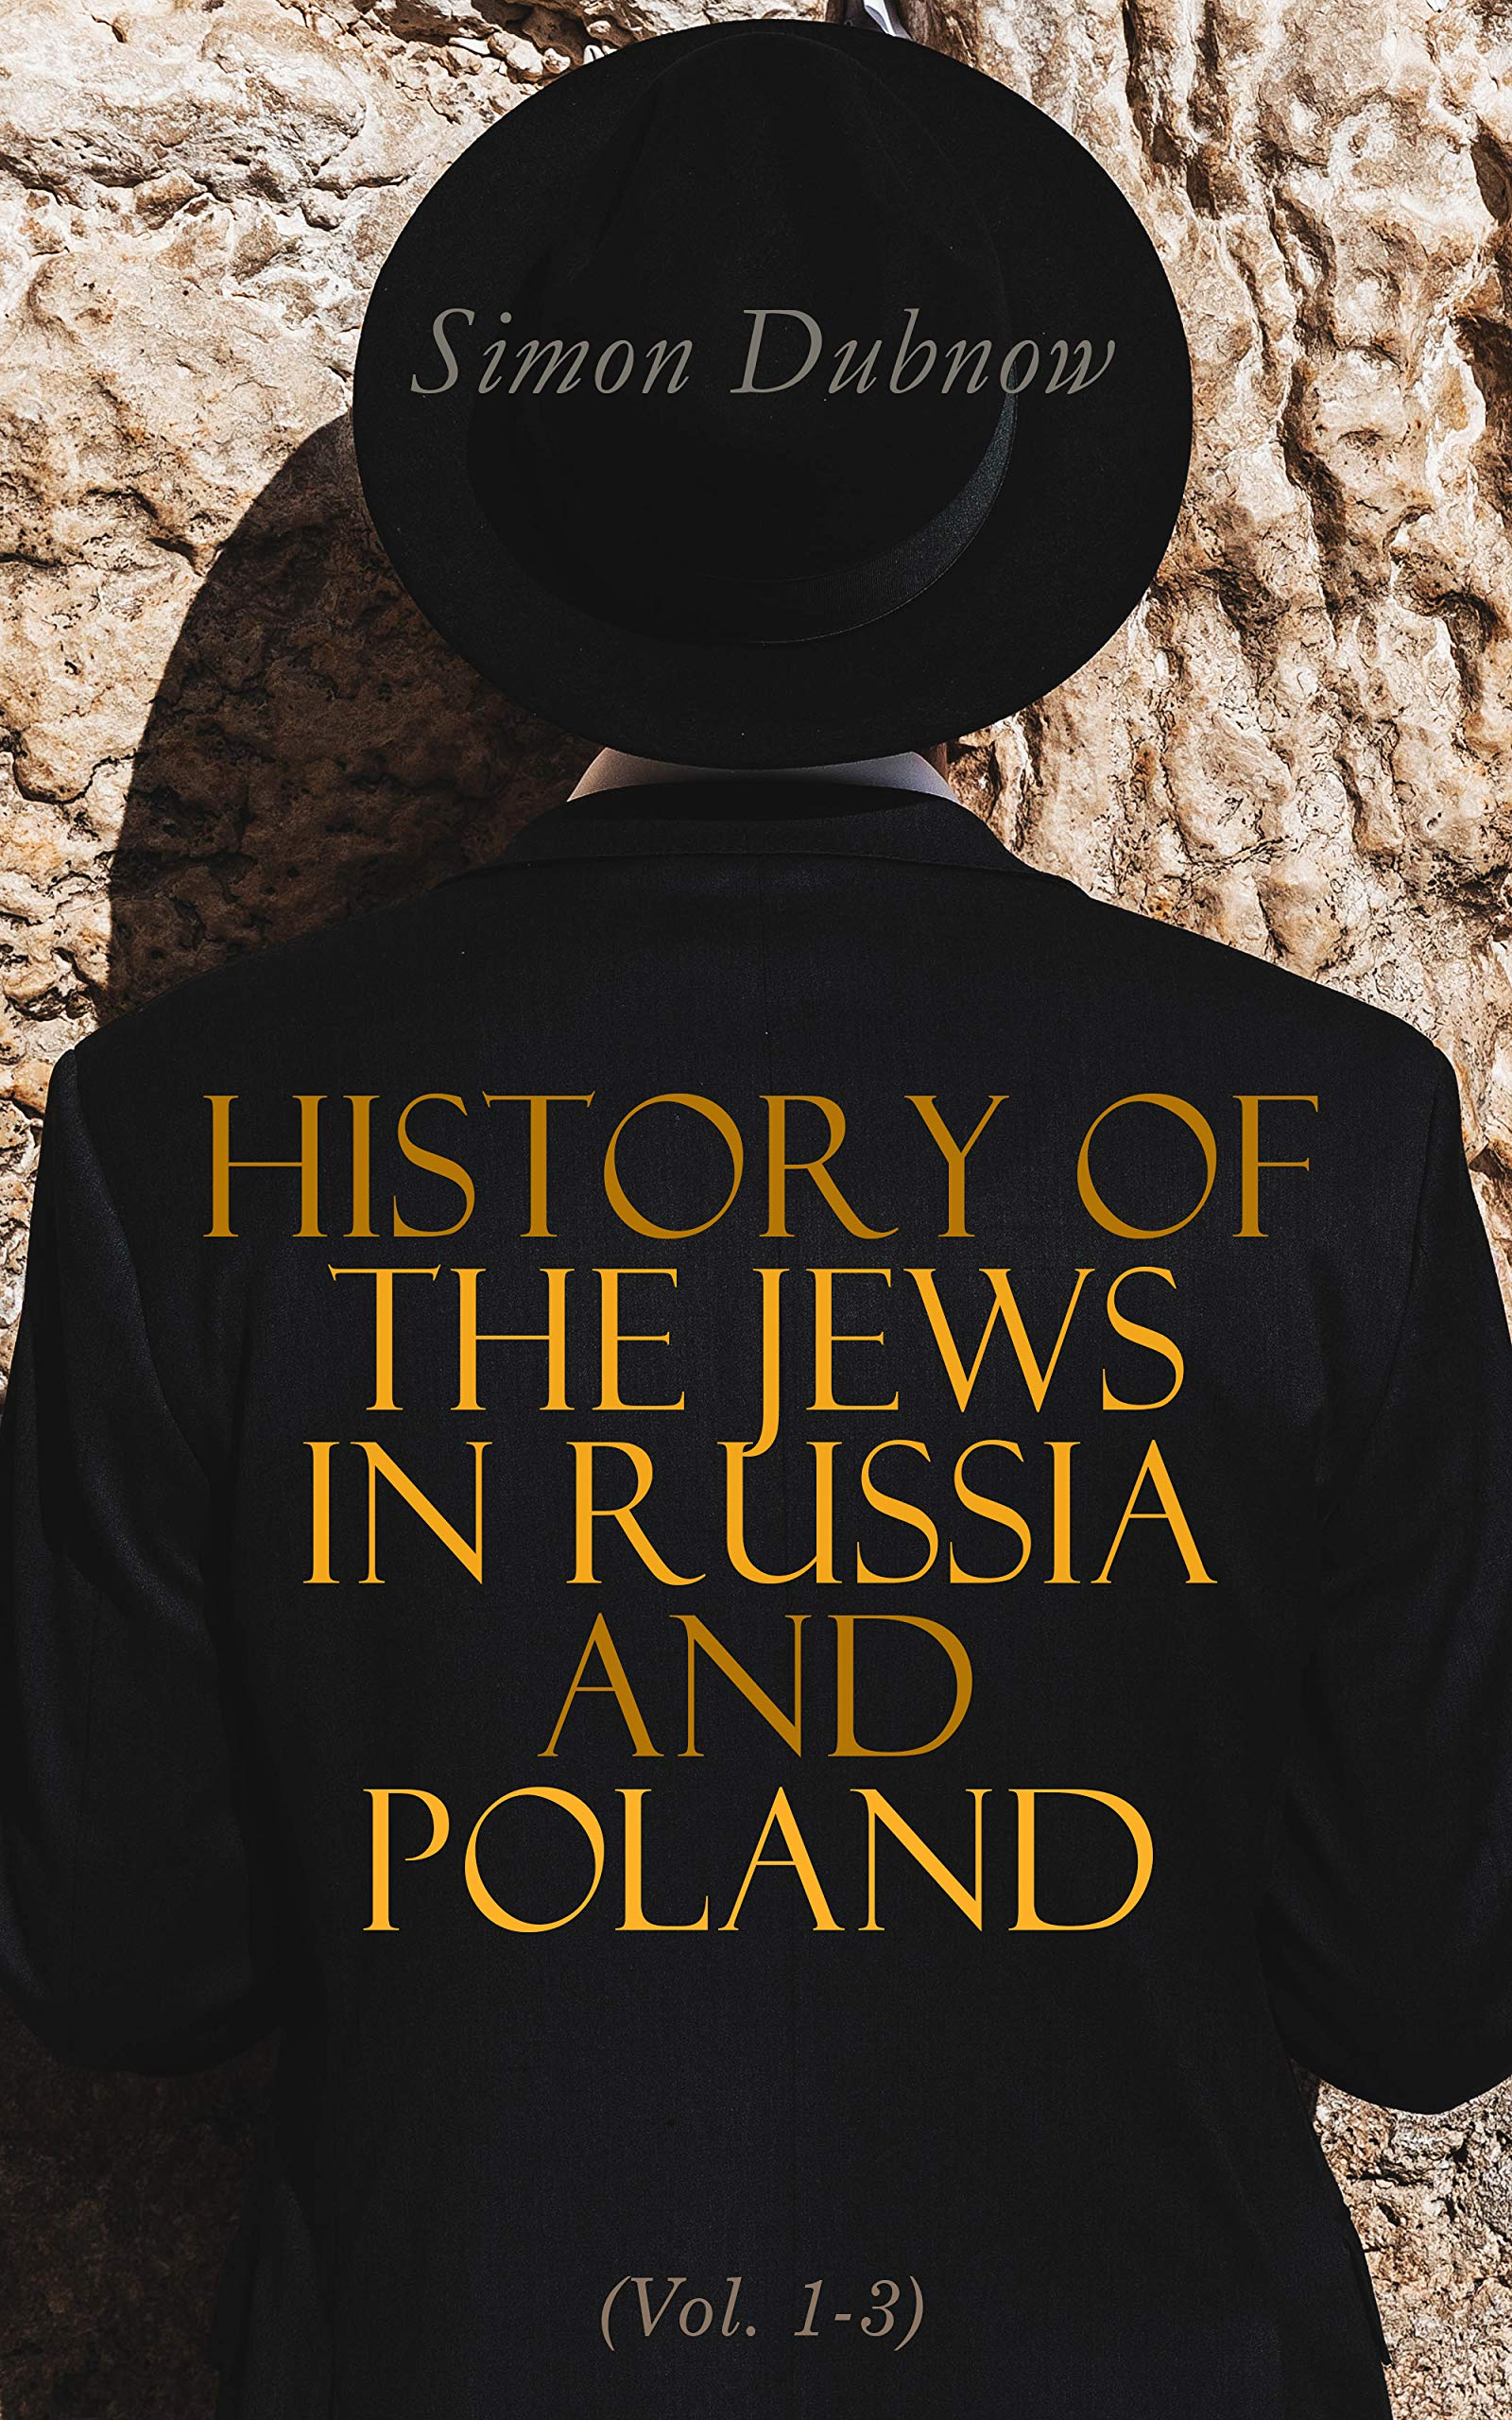 History of the Jews in Russia and Poland (Vol. 1-3)